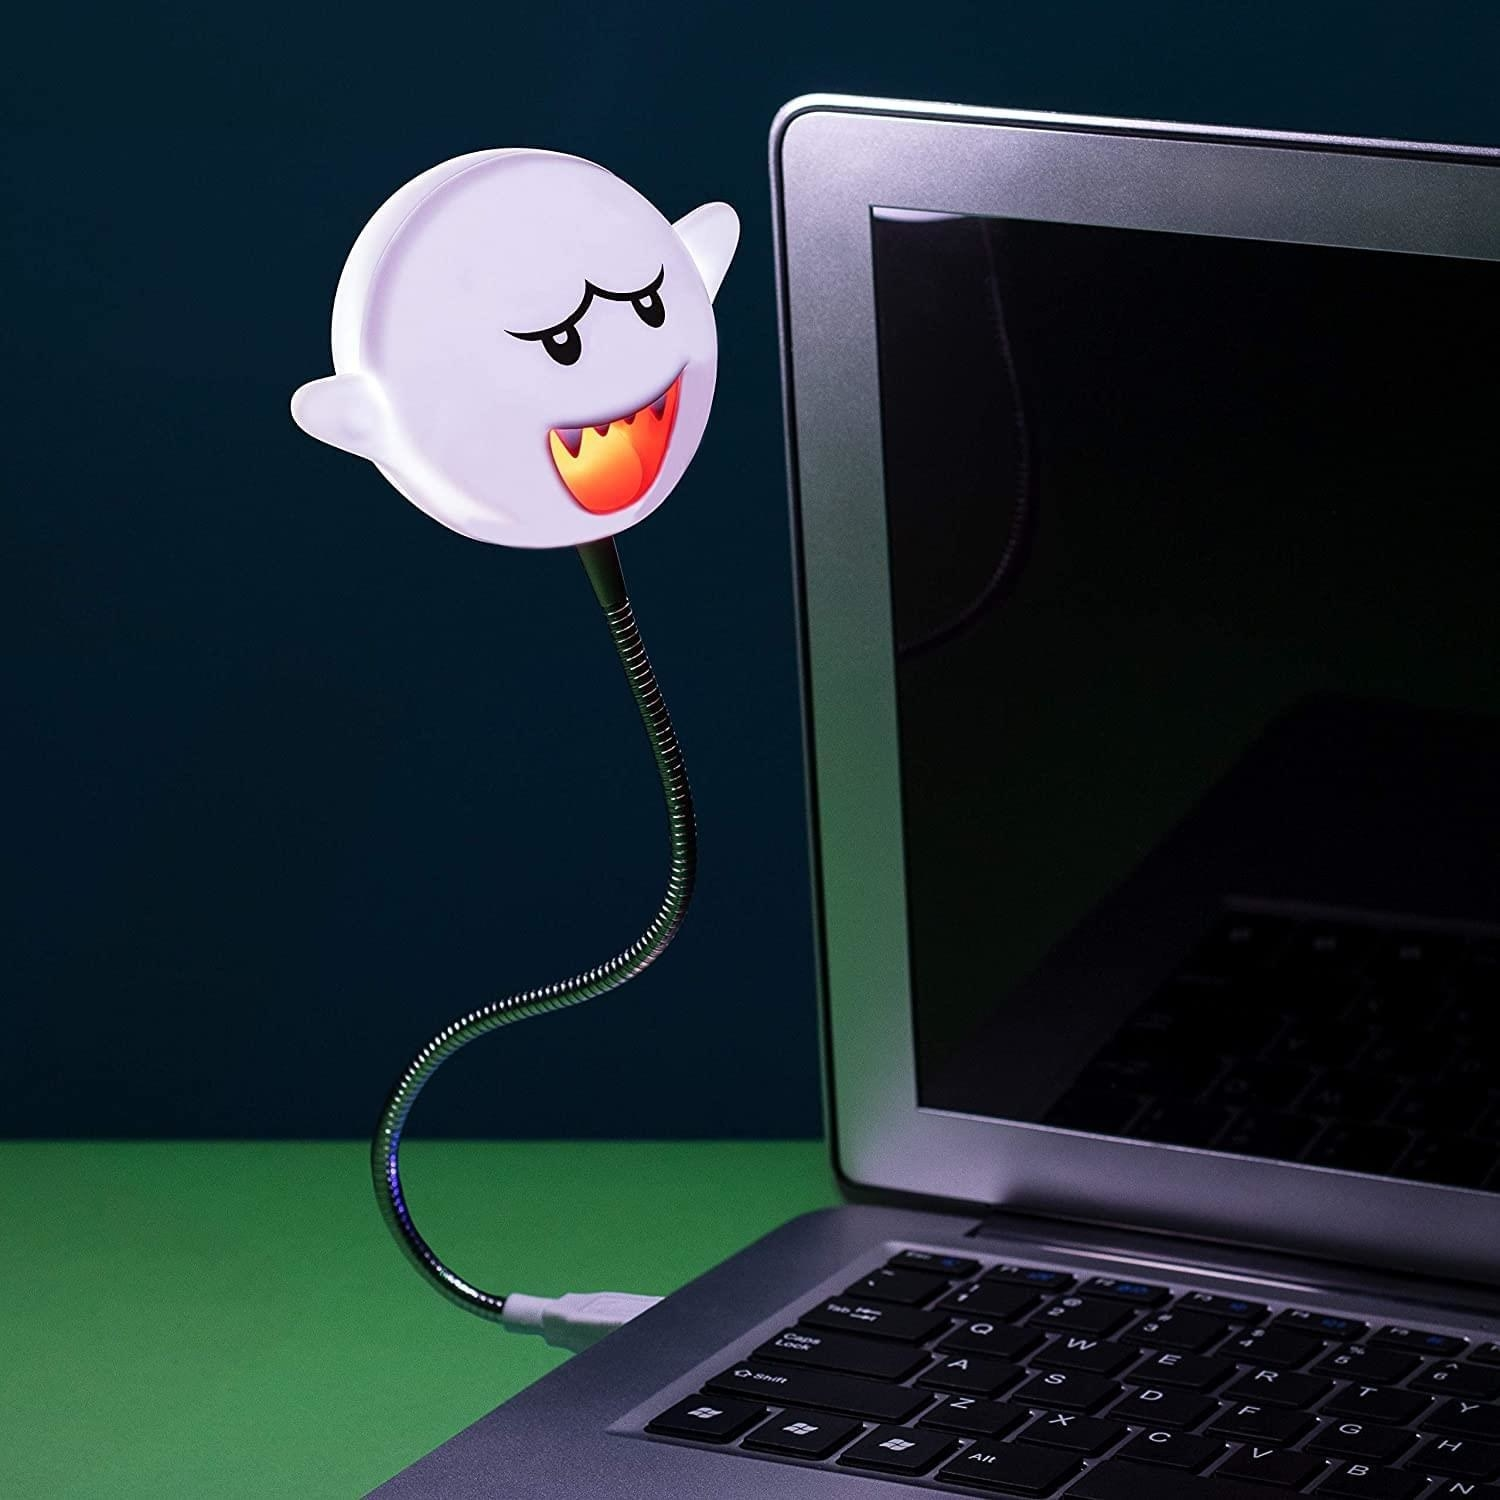 small nintendo ghost on bendy cord that connects to usb port on laptop